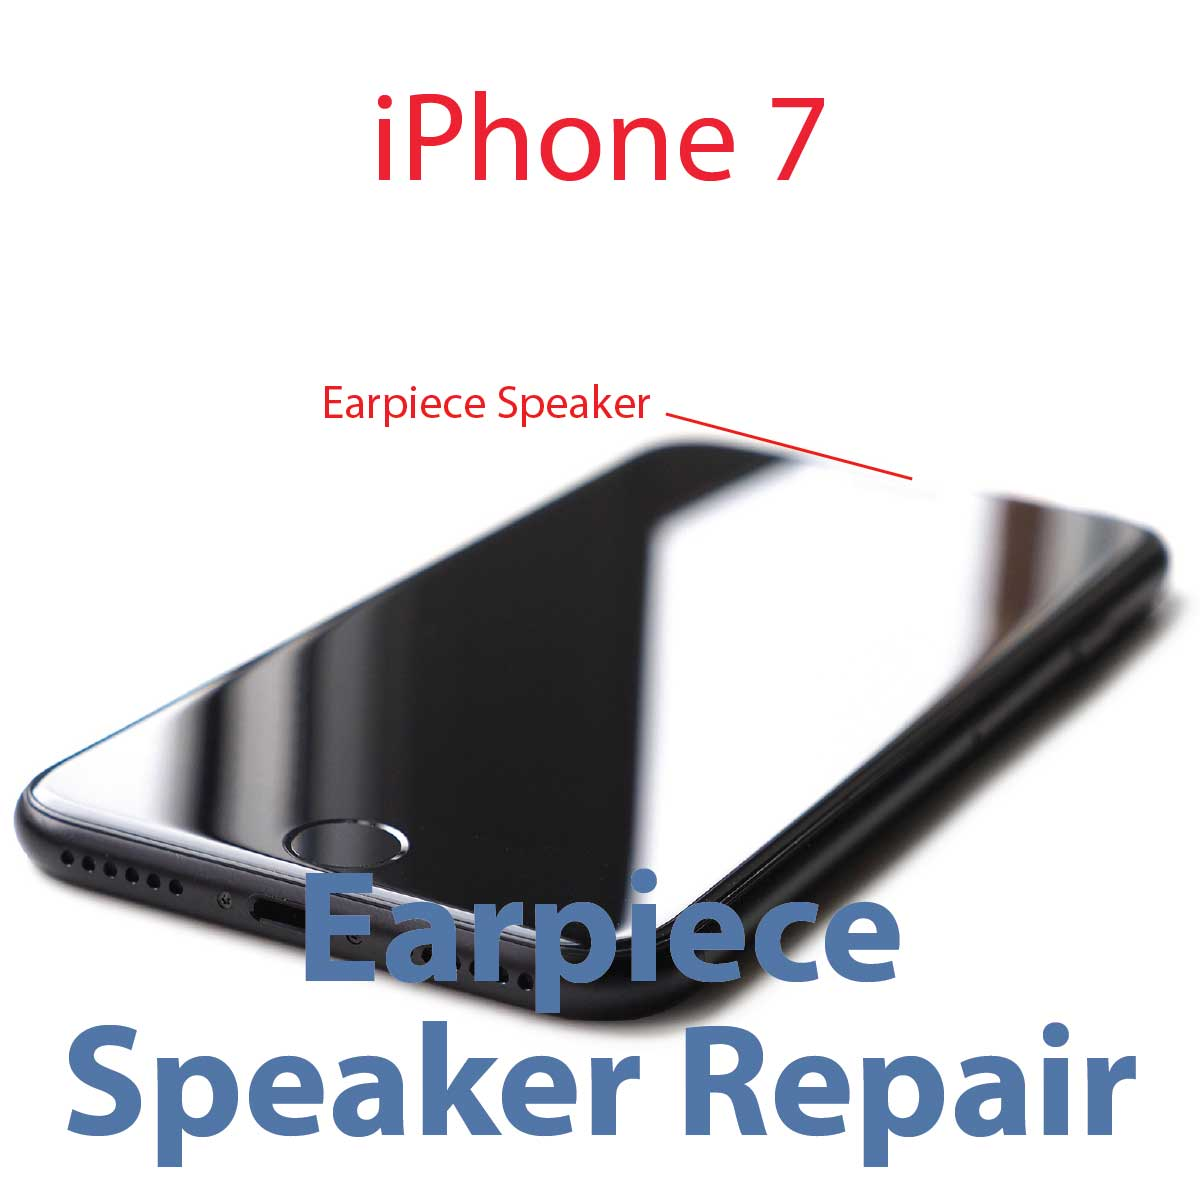 iPhone 7 Earpiece Speaker Replacement